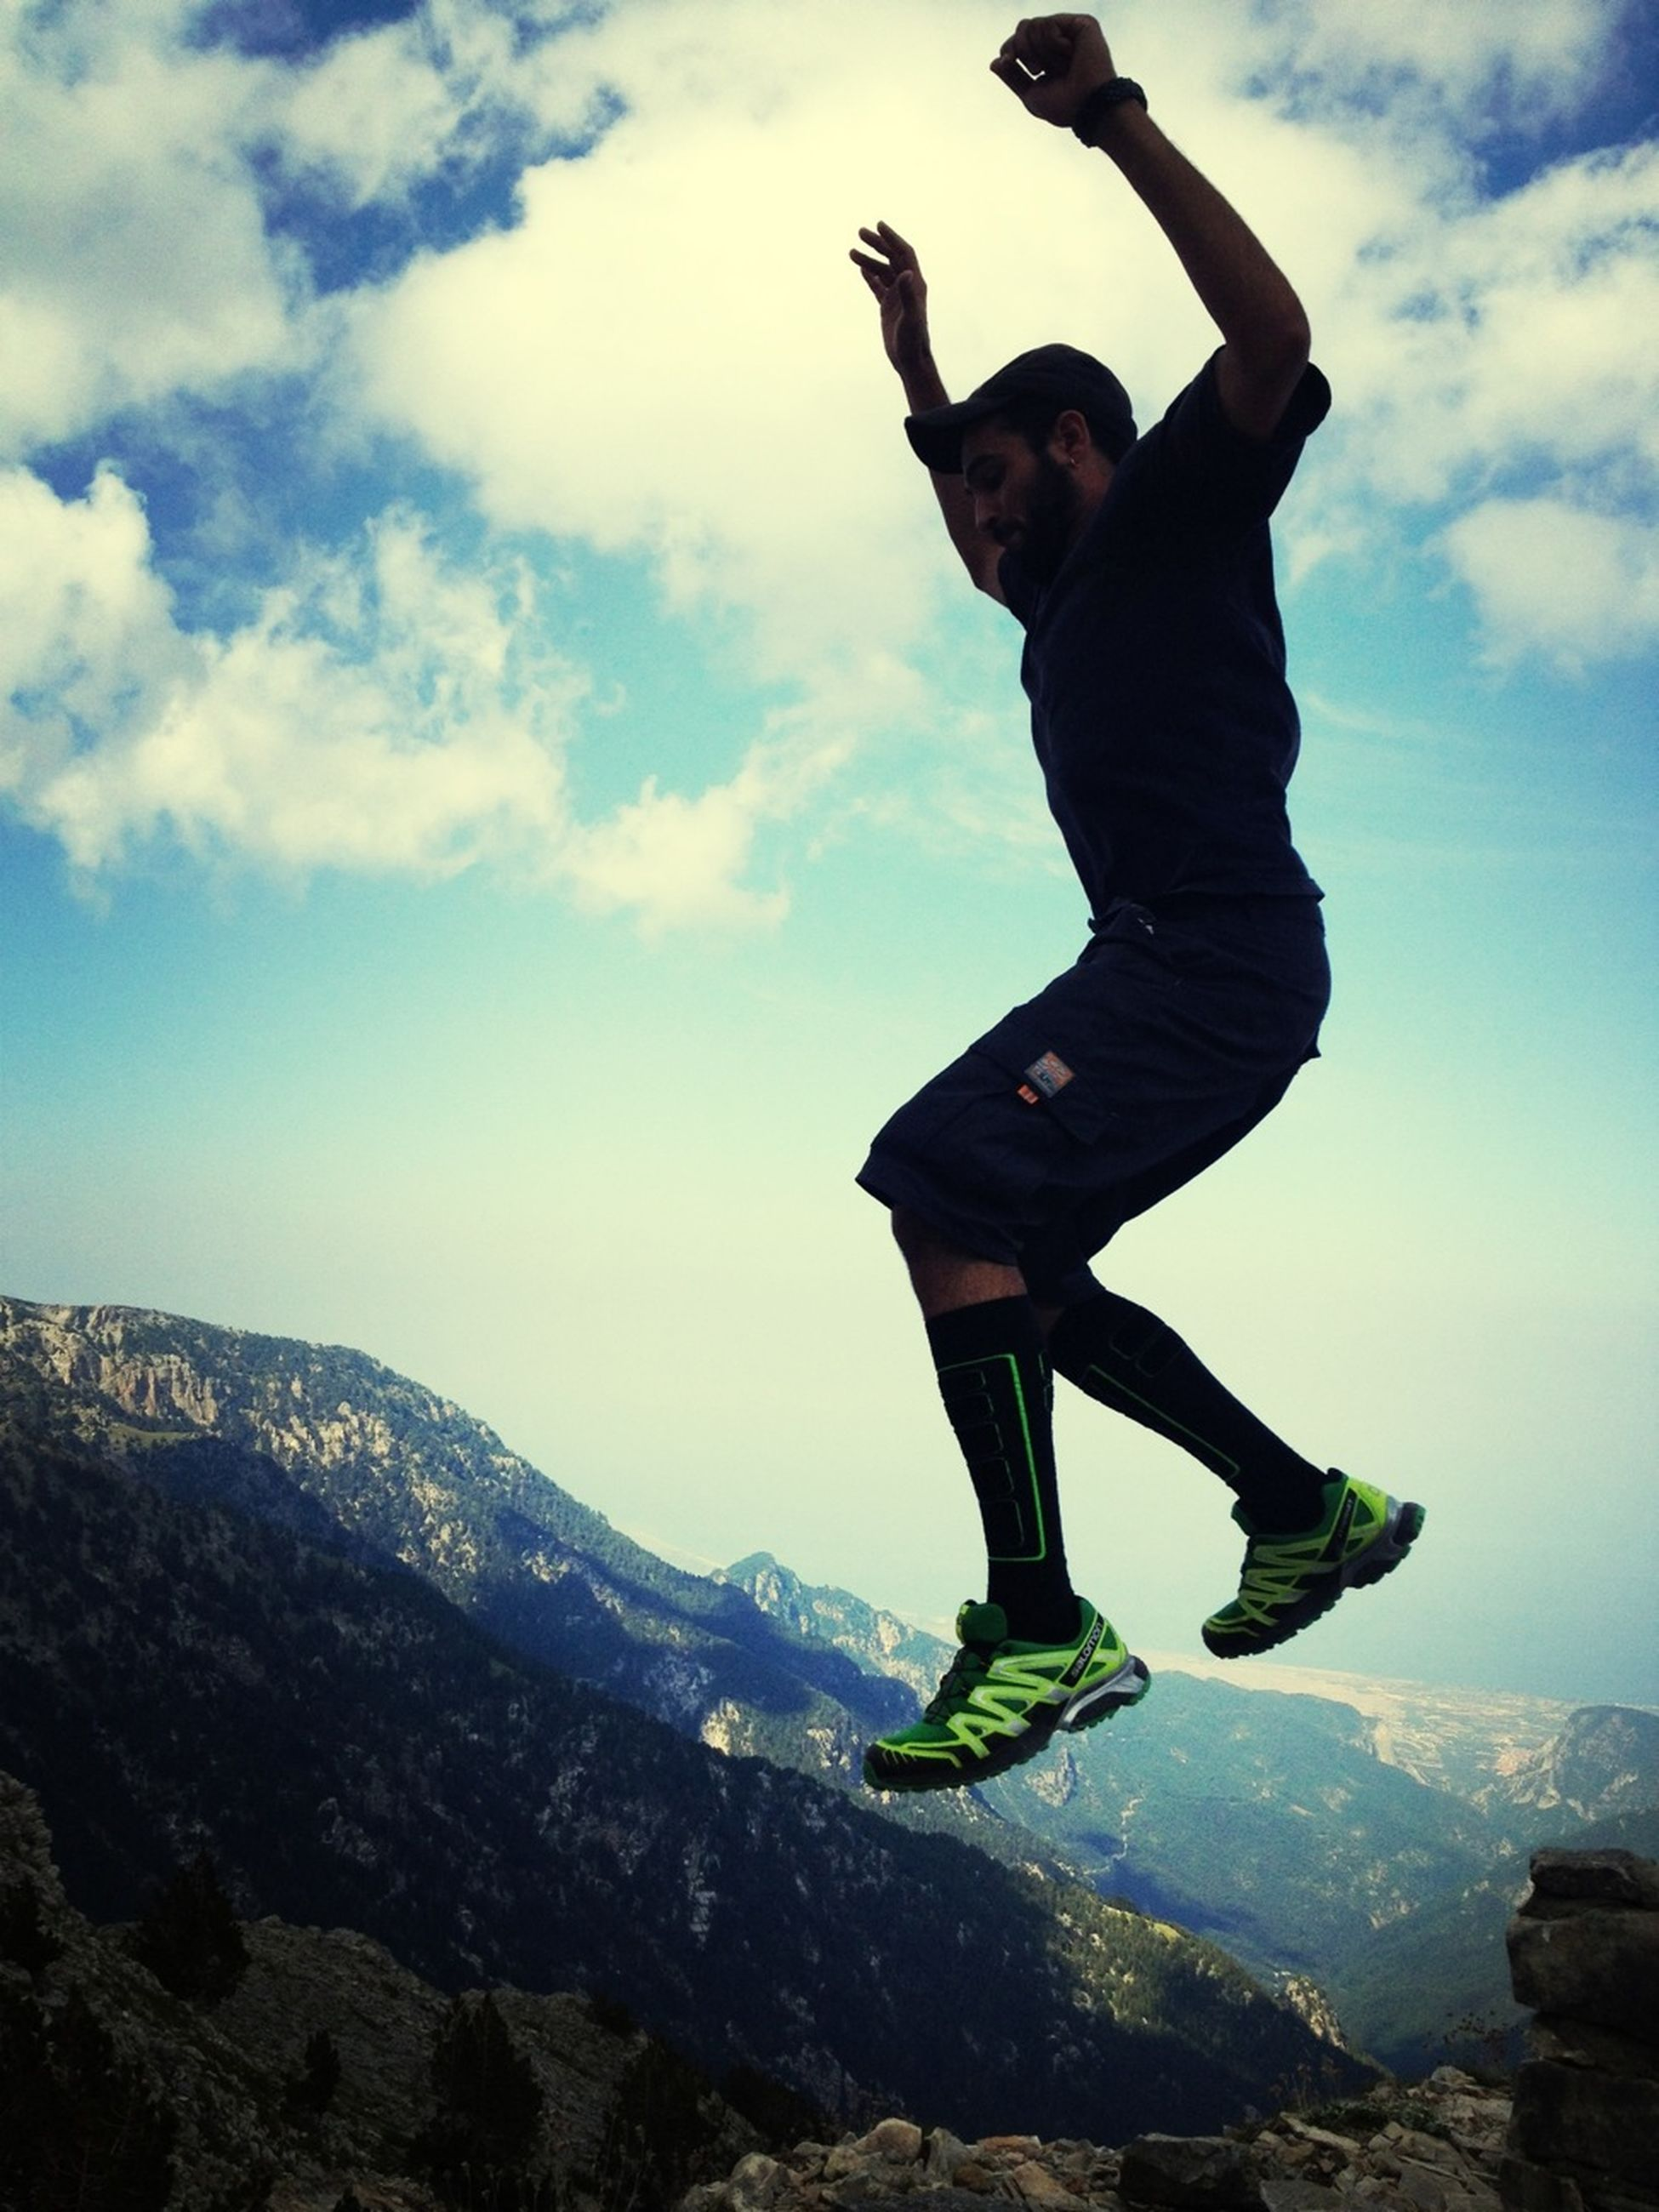 full length, lifestyles, leisure activity, sky, jumping, arms outstretched, mid-air, standing, mountain, cloud - sky, casual clothing, freedom, carefree, arms raised, enjoyment, balance, low angle view, young adult